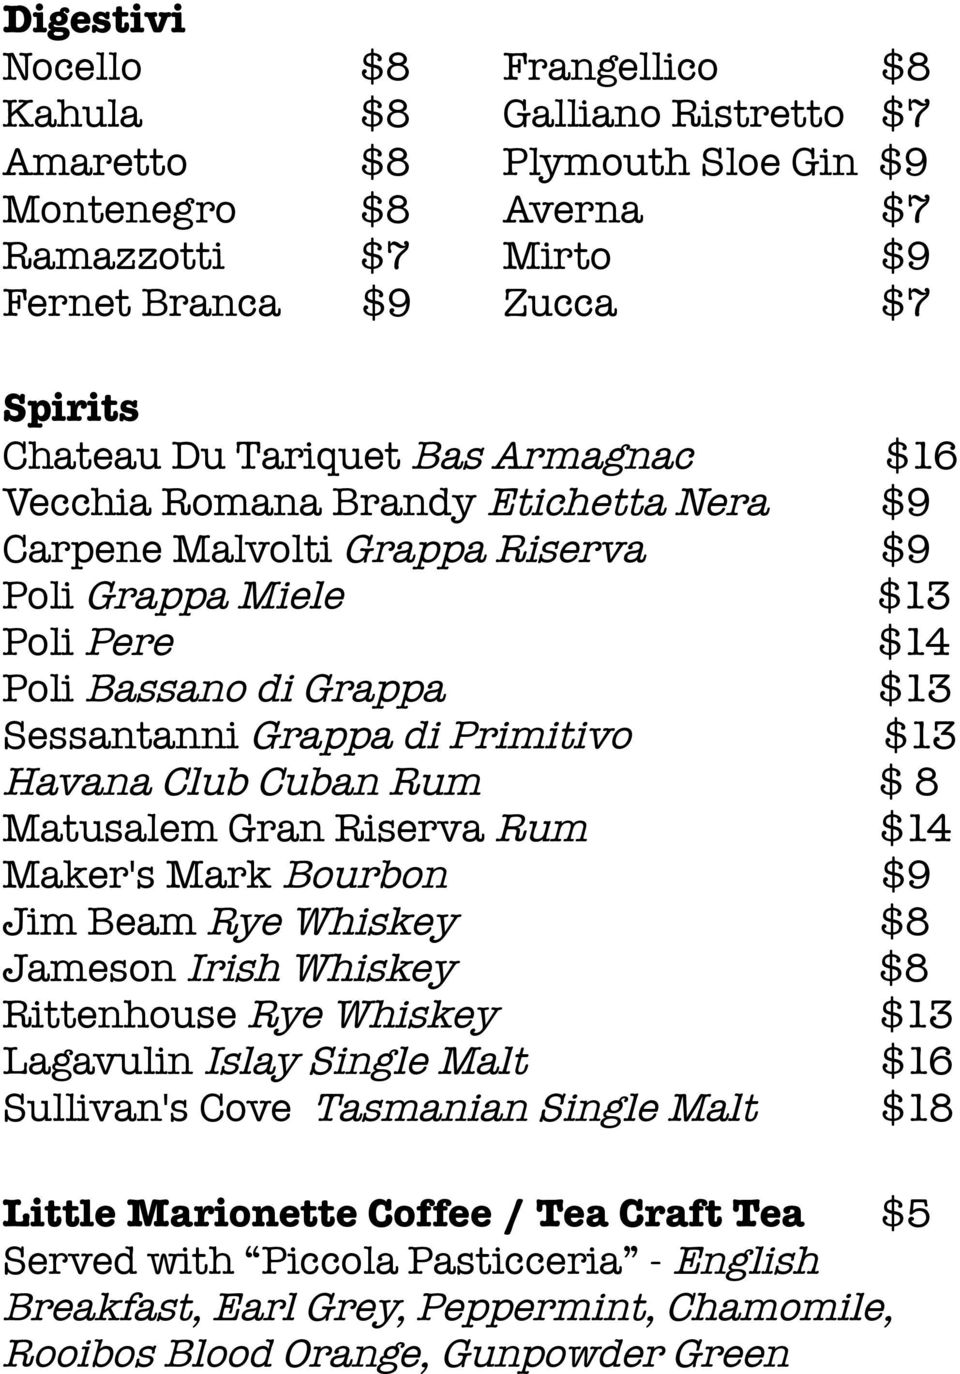 $13 Havana Club Cuban Rum $ 8 Matusalem Gran Riserva Rum $14 Maker's Mark Bourbon $9 Jim Beam Rye Whiskey $8 Jameson Irish Whiskey $8 Rittenhouse Rye Whiskey $13 Lagavulin Islay Single Malt $16